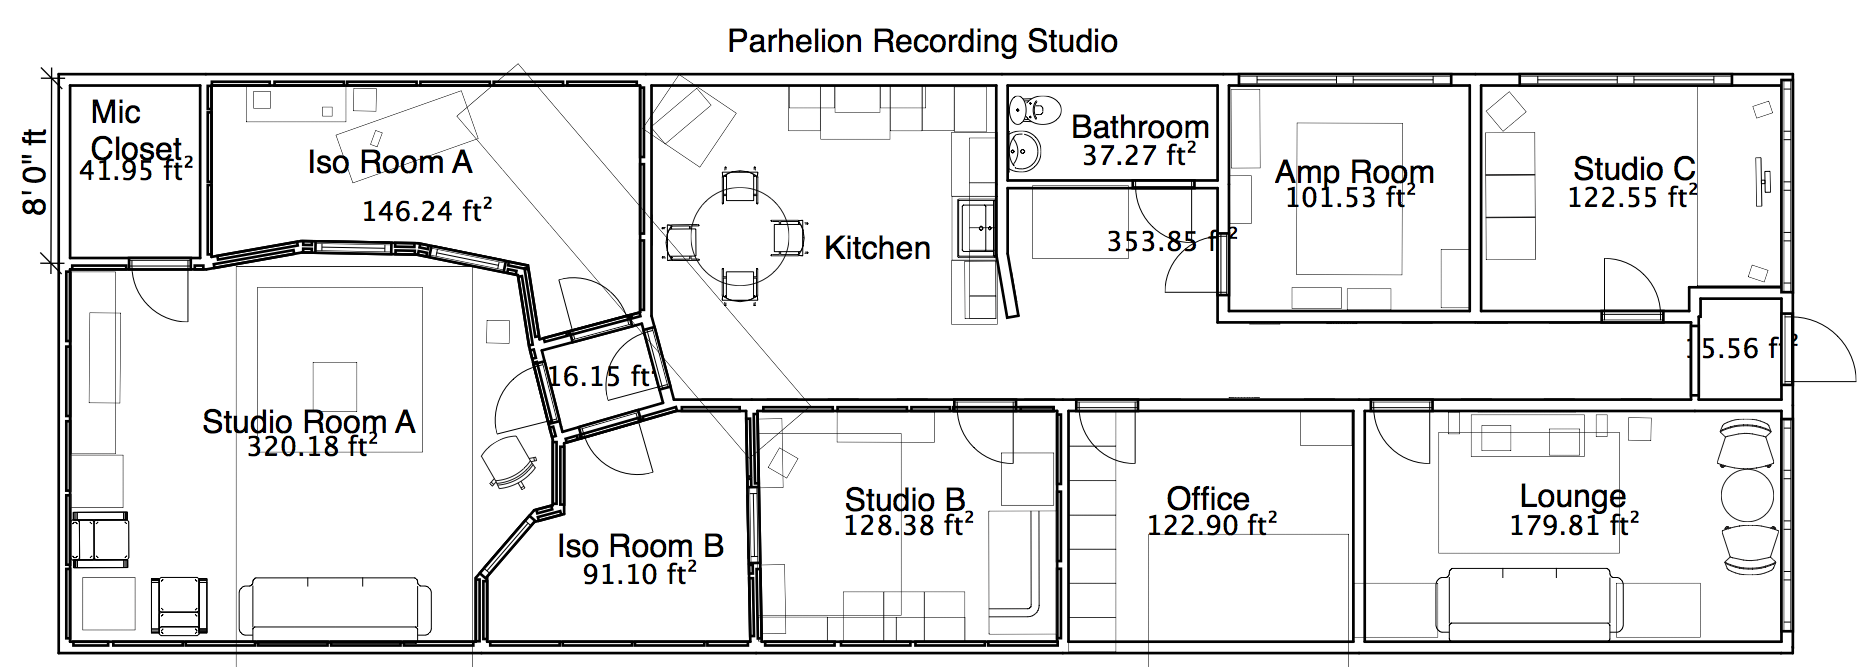 Studio layout parhelion recording studio atlanta latest news ccuart